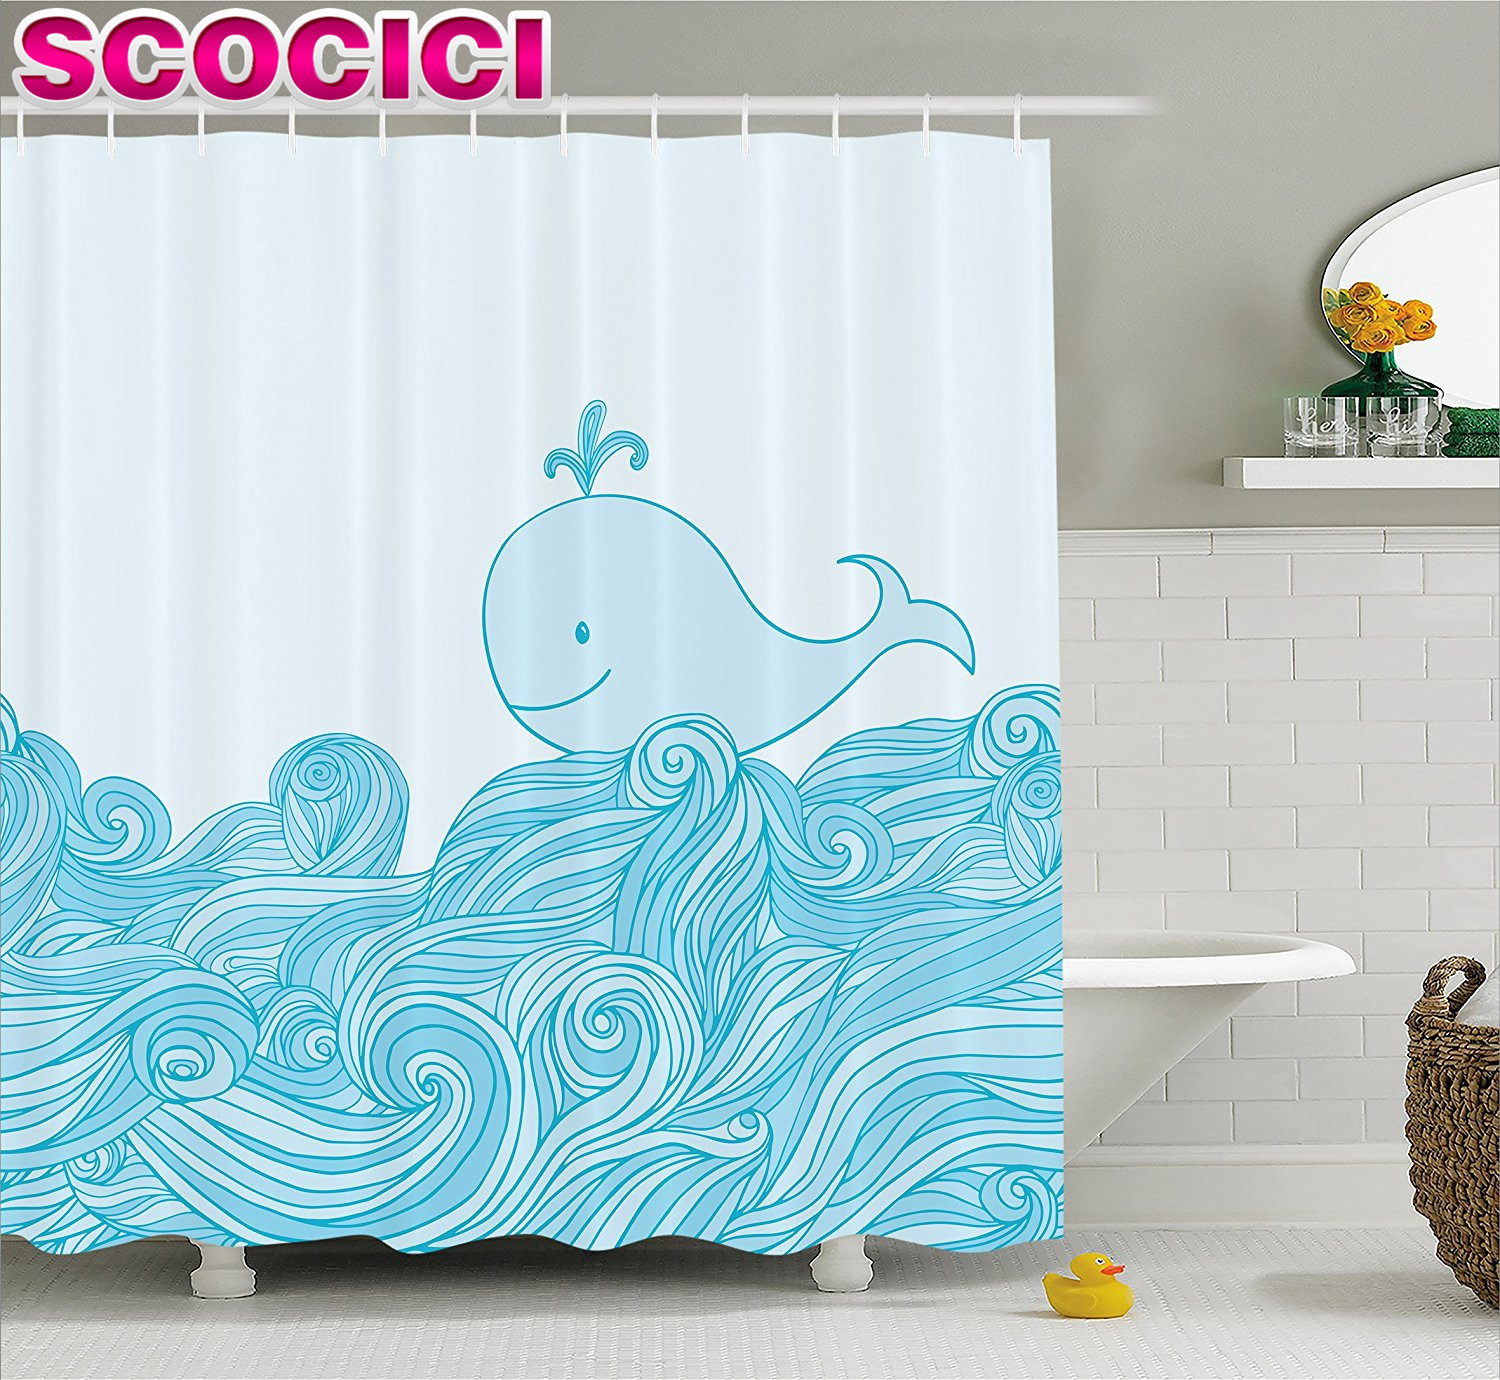 Whale shower curtain - Whale Decor Shower Curtain Blue Cute Baby Smiling Whale On A Wavy Ornamental Spried Ocean Image